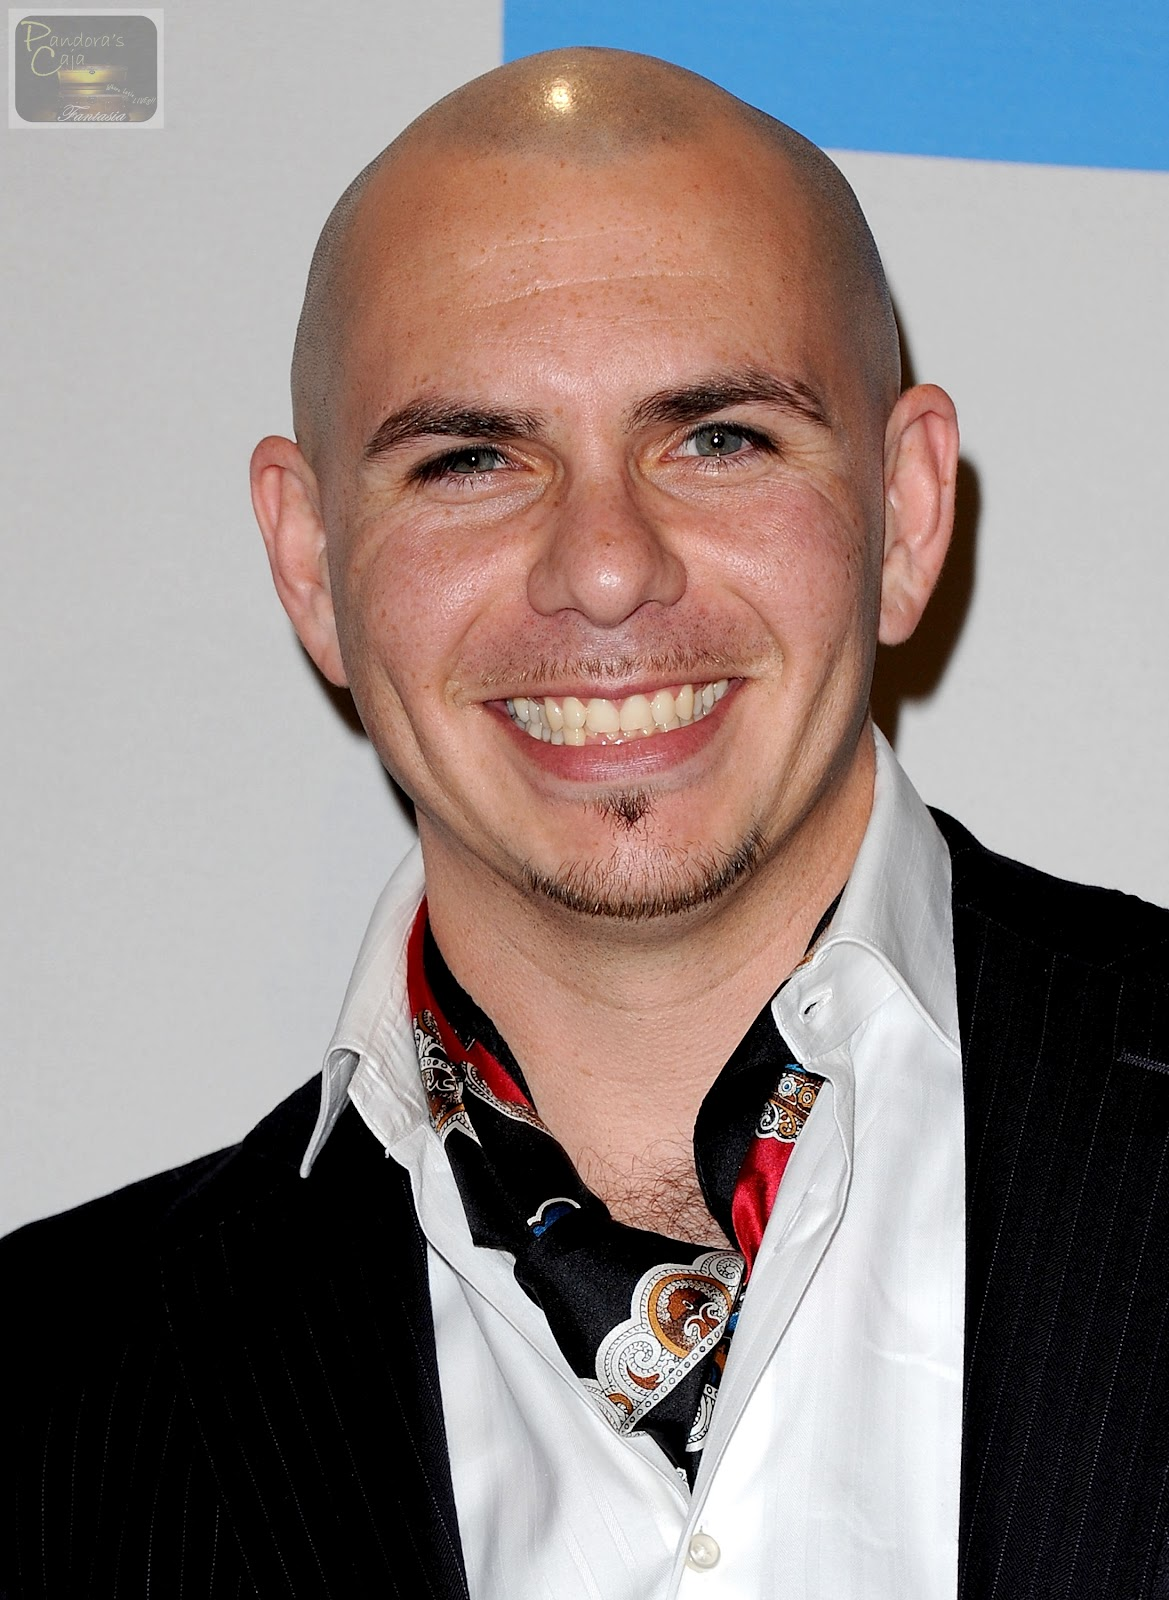 Pitbull Rapper Picture & wallpapers